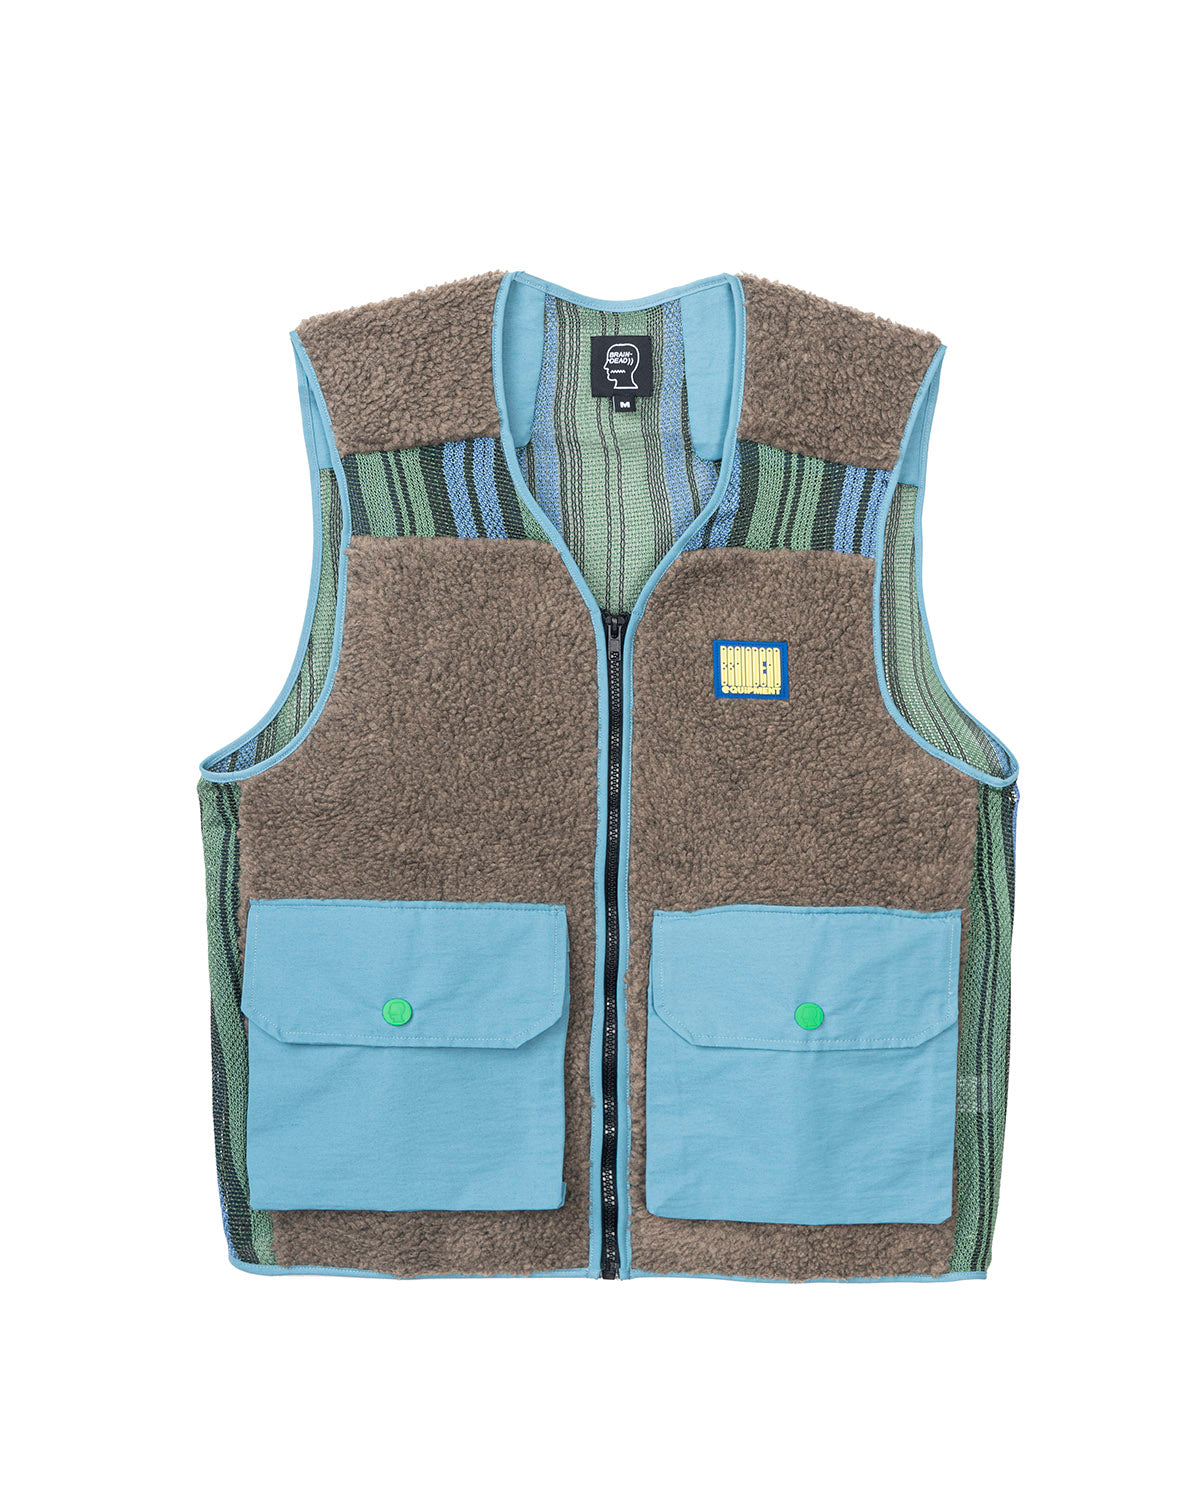 Sherpa Tactical Vest - Brown/Skyblue